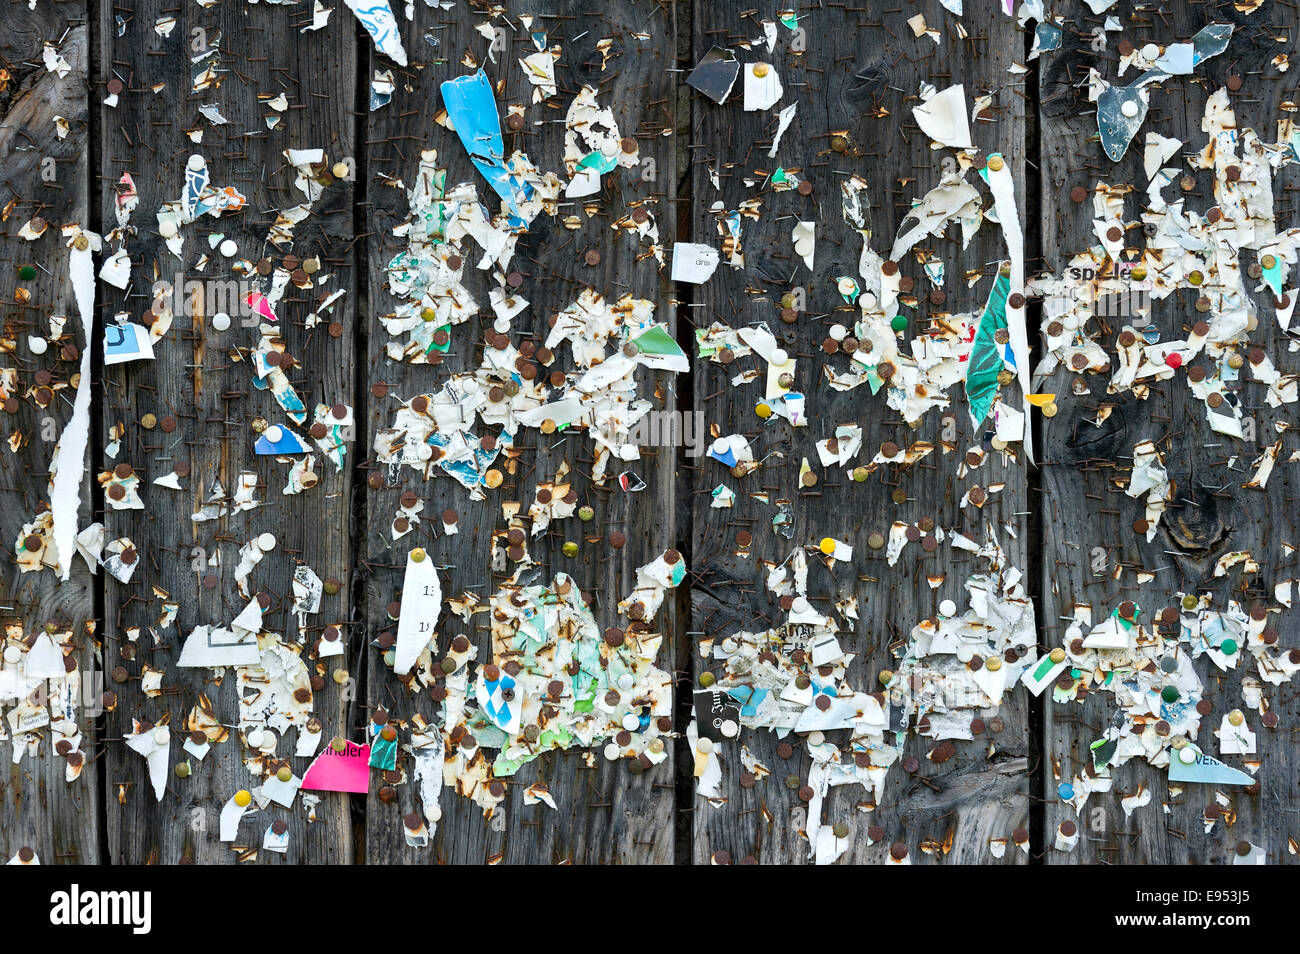 Wooden wall with poster scraps, tacks and staples, Germany - Stock Image